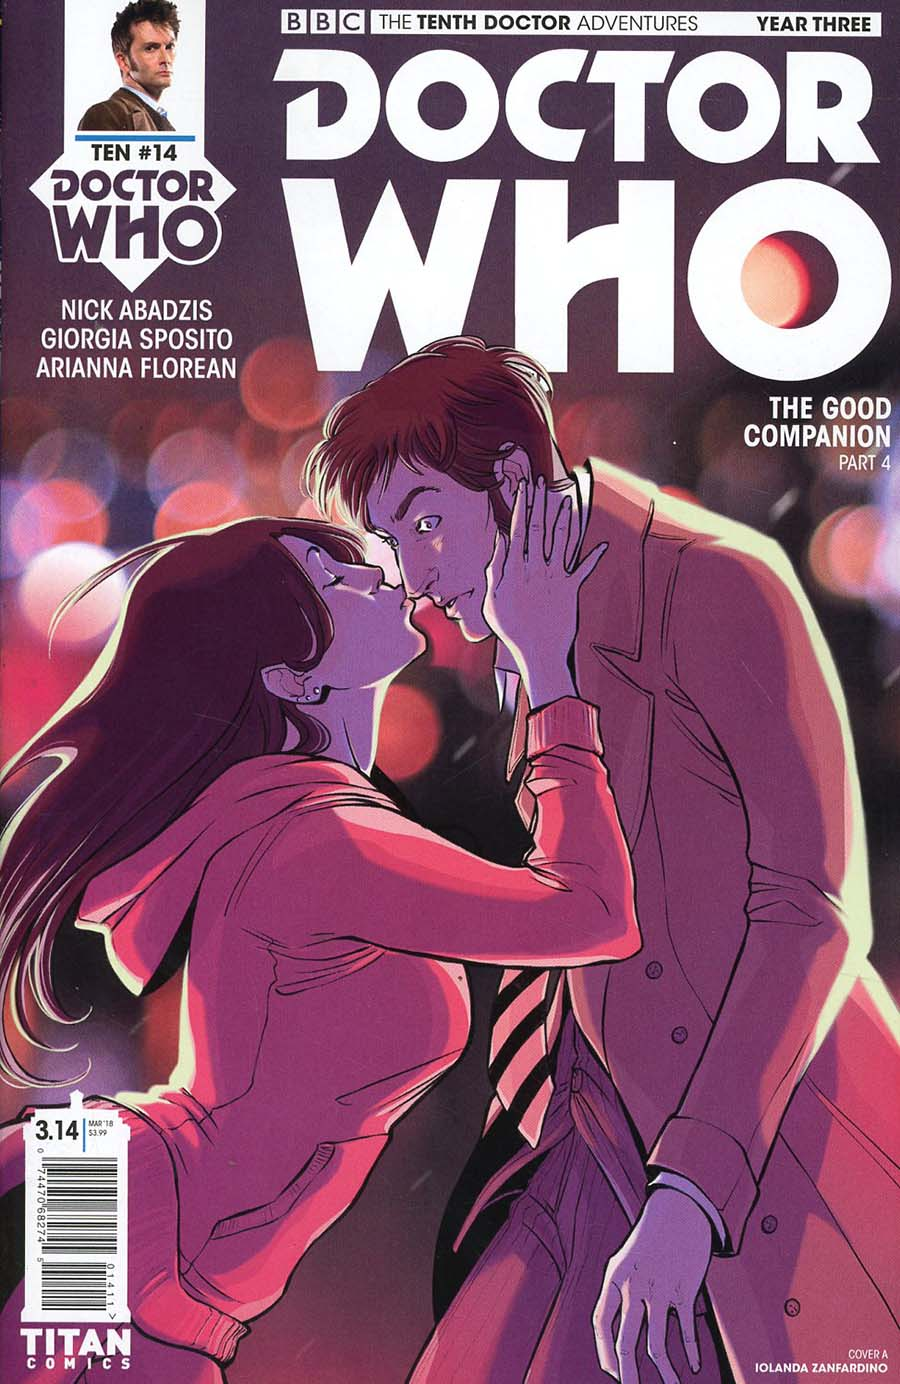 Doctor Who 10th Doctor Year Three #14 Cover A Regular Iolanda Zanfardino Cover